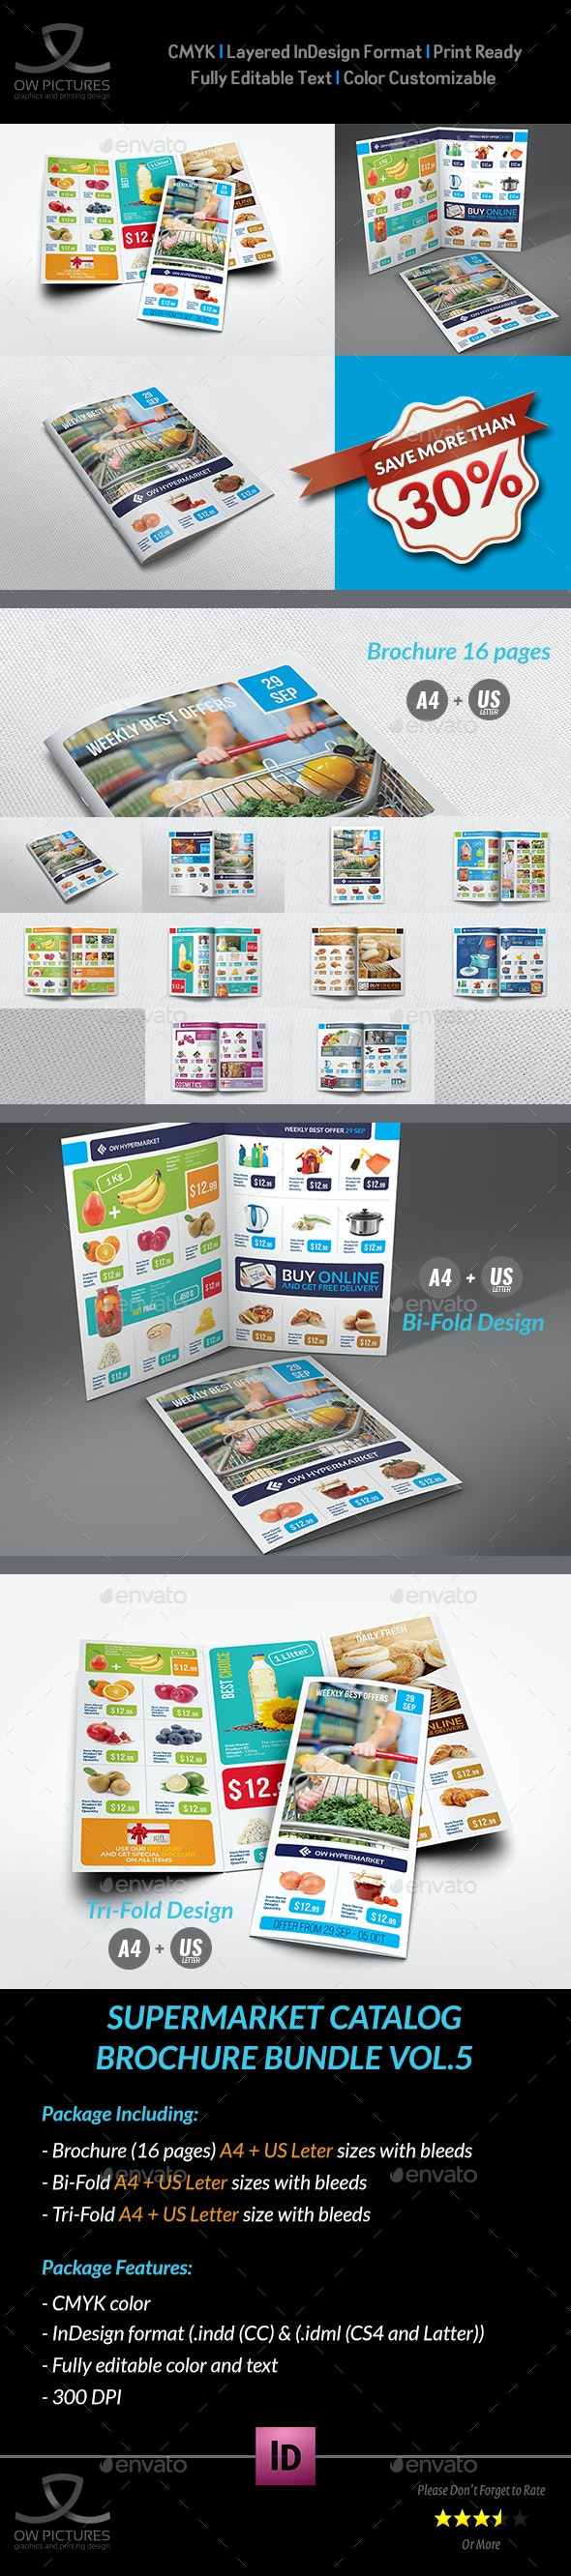 Supermarket Catalog Brochure Bundle Template Vol.5 - Catalogs Brochures